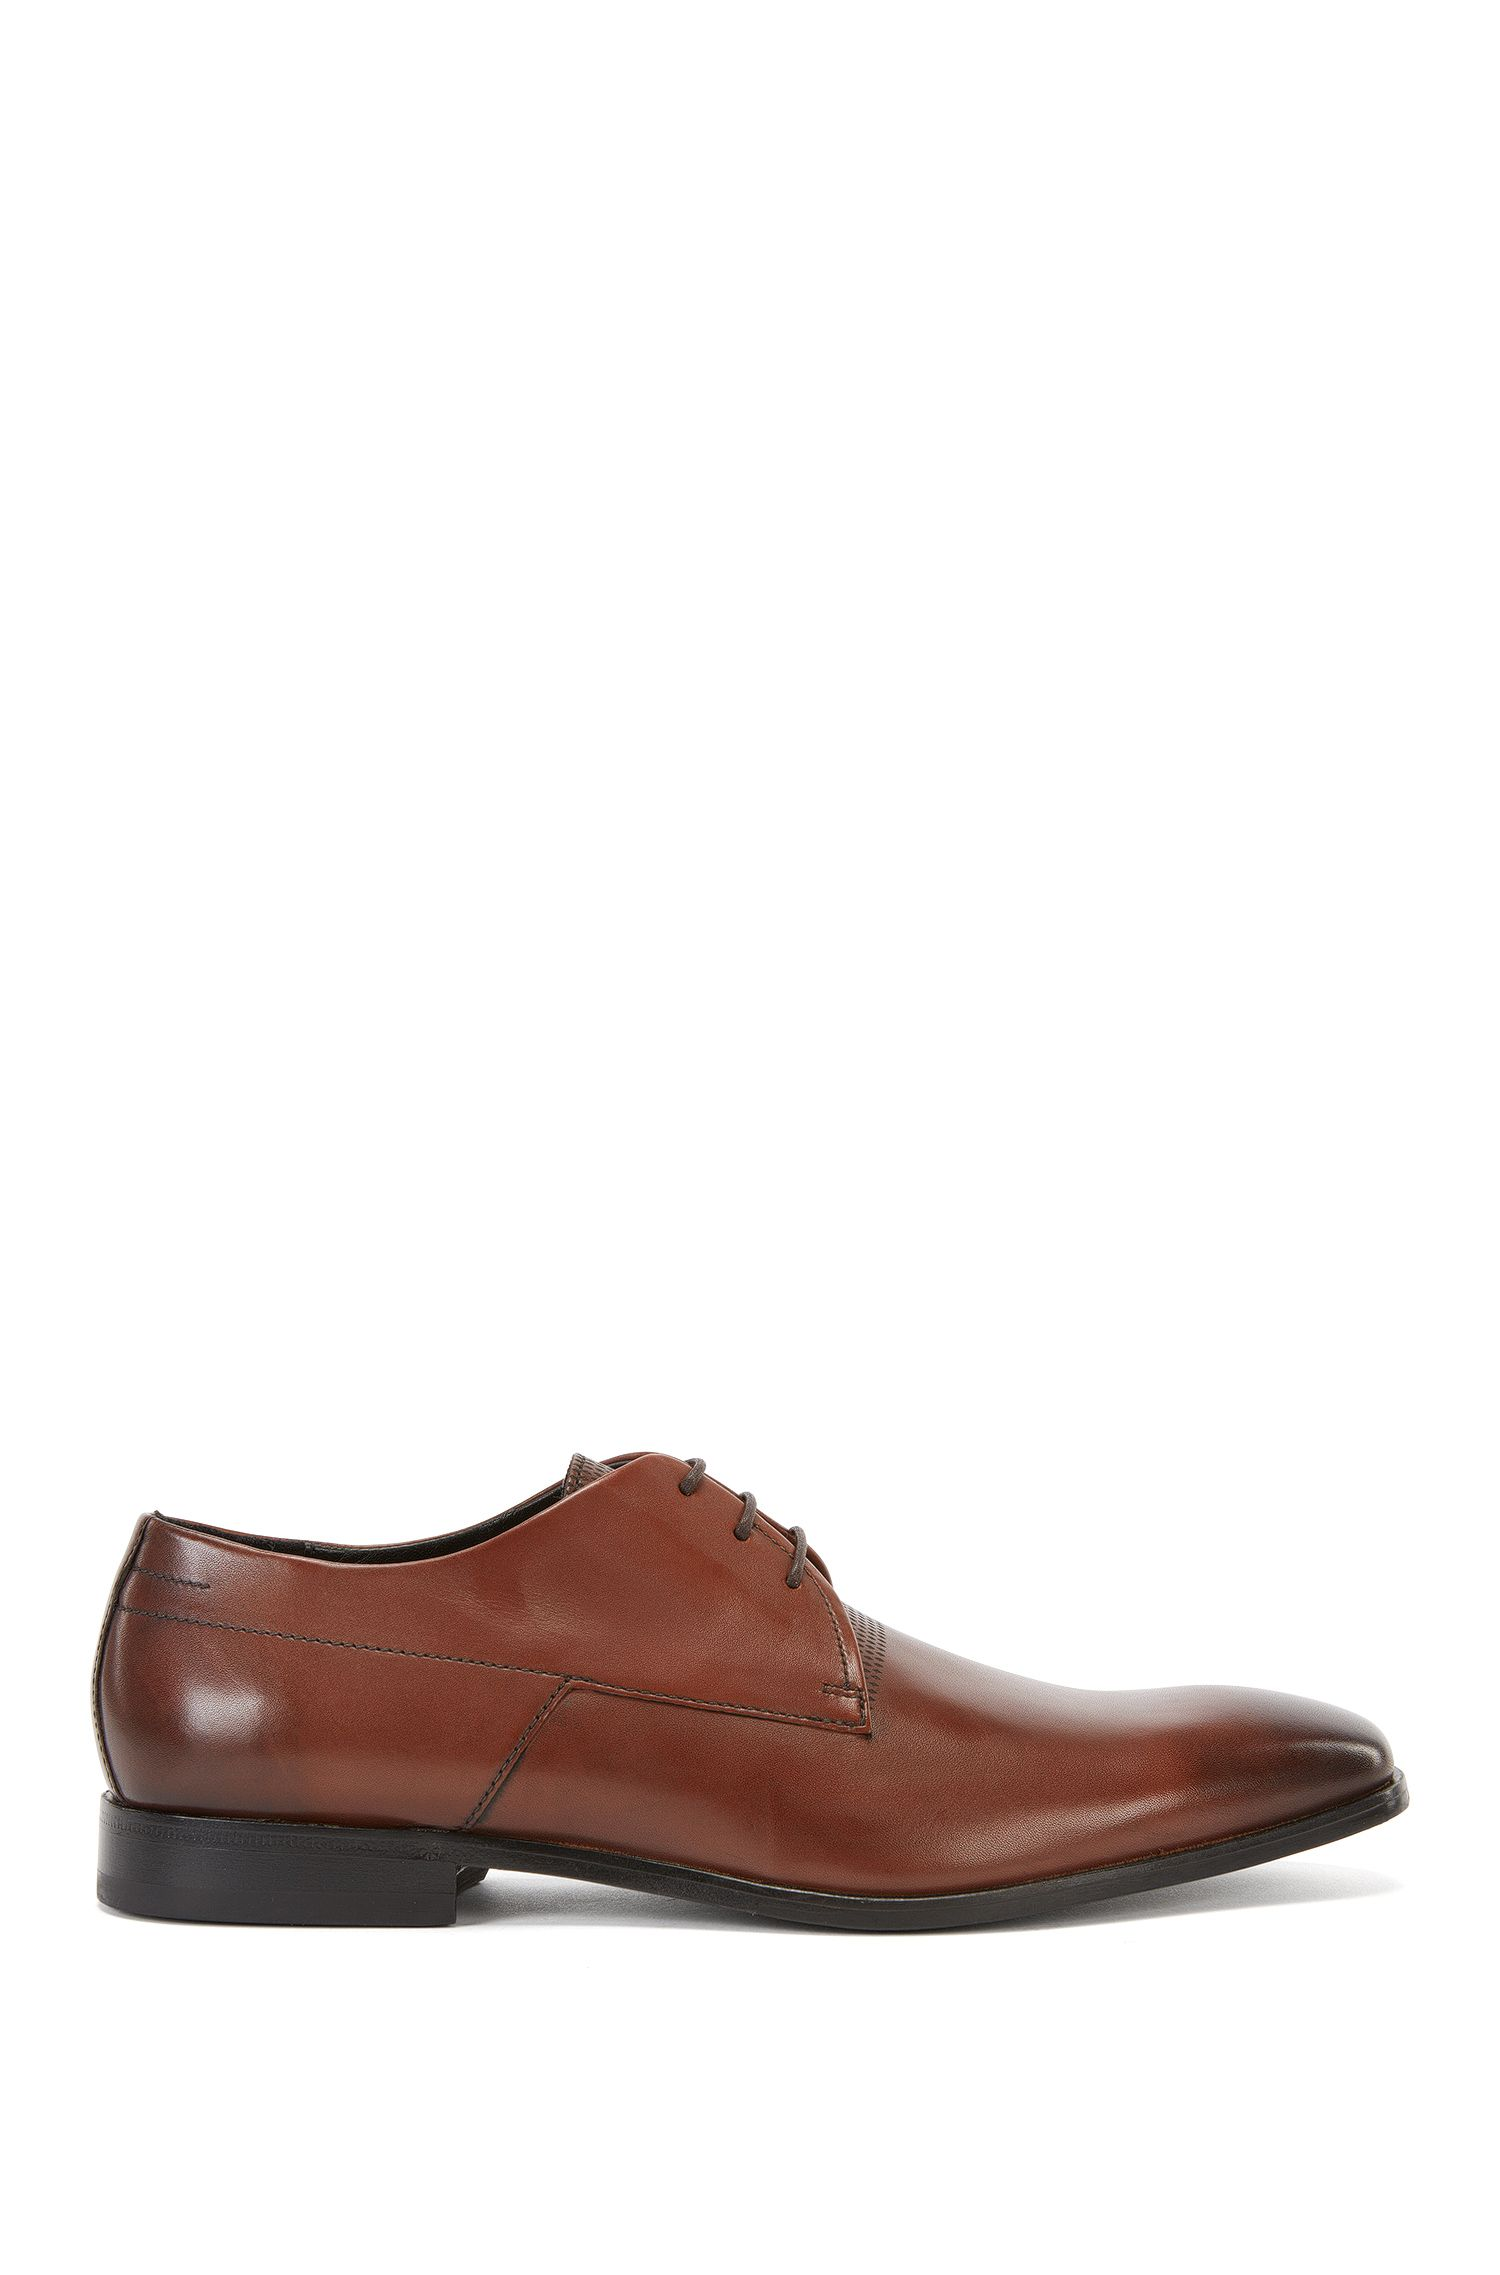 Leather lace-up shoes with perforated tongue: 'Square_Derb_srls'